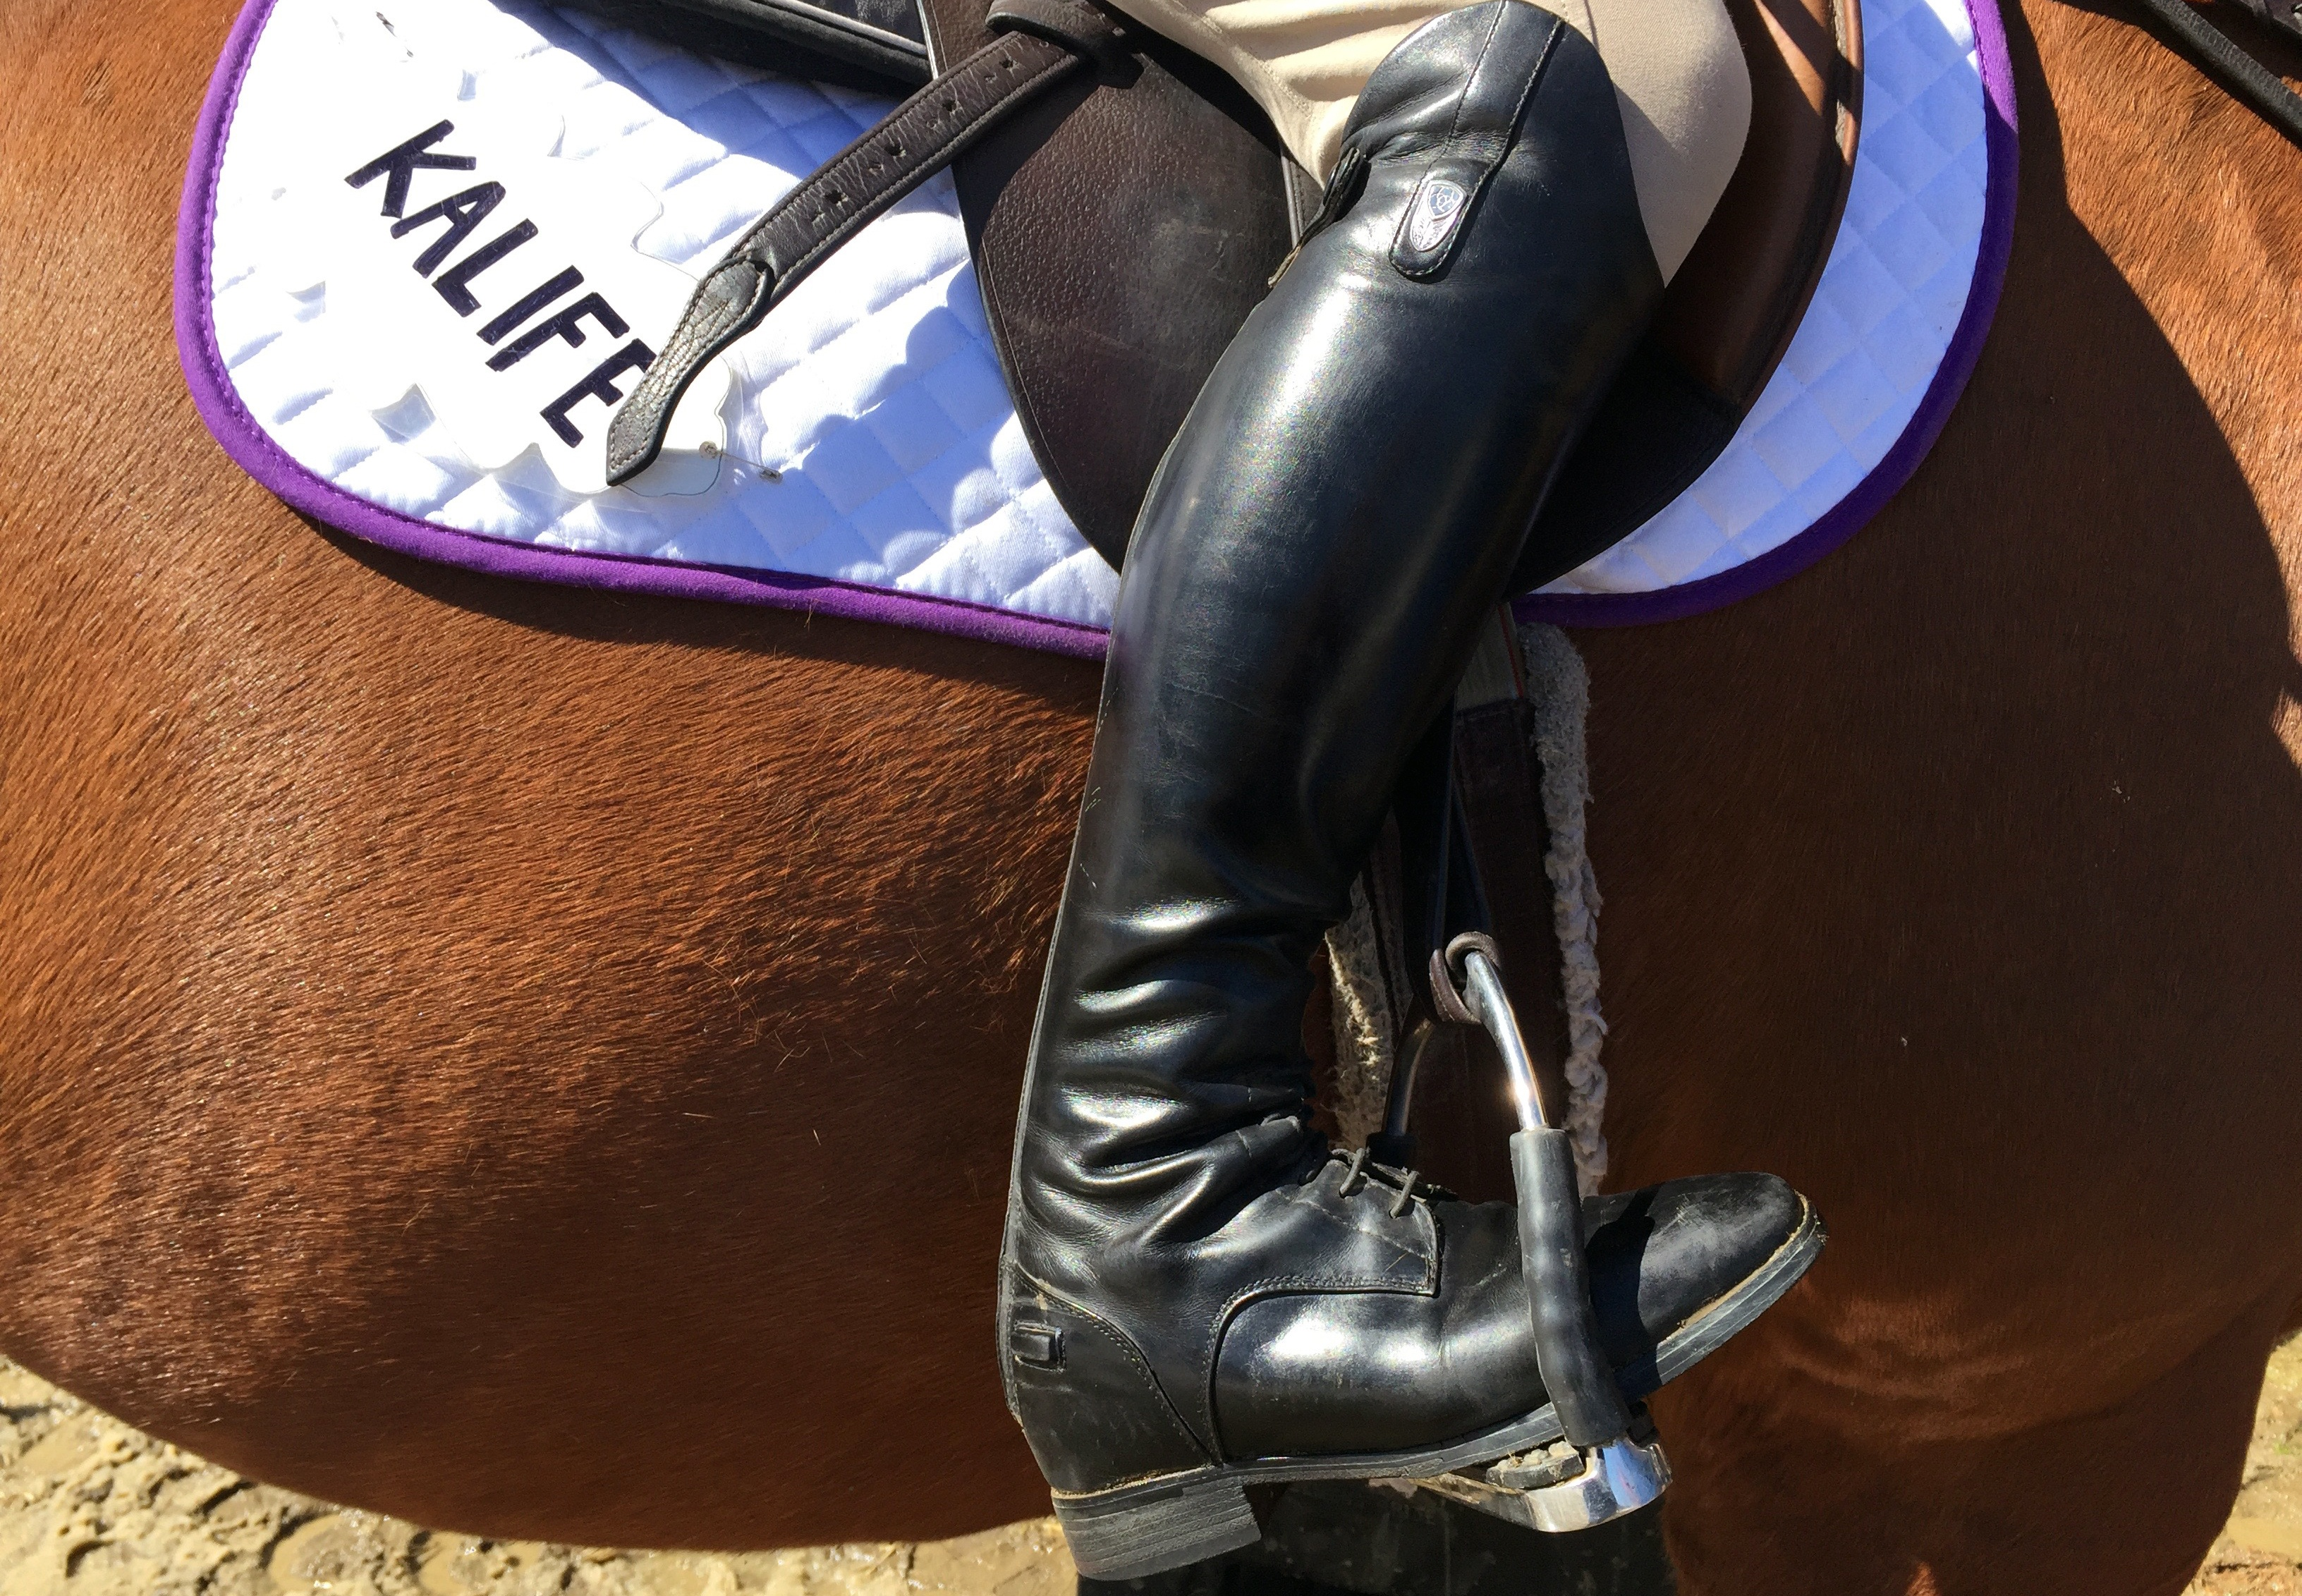 Shiny riding boot